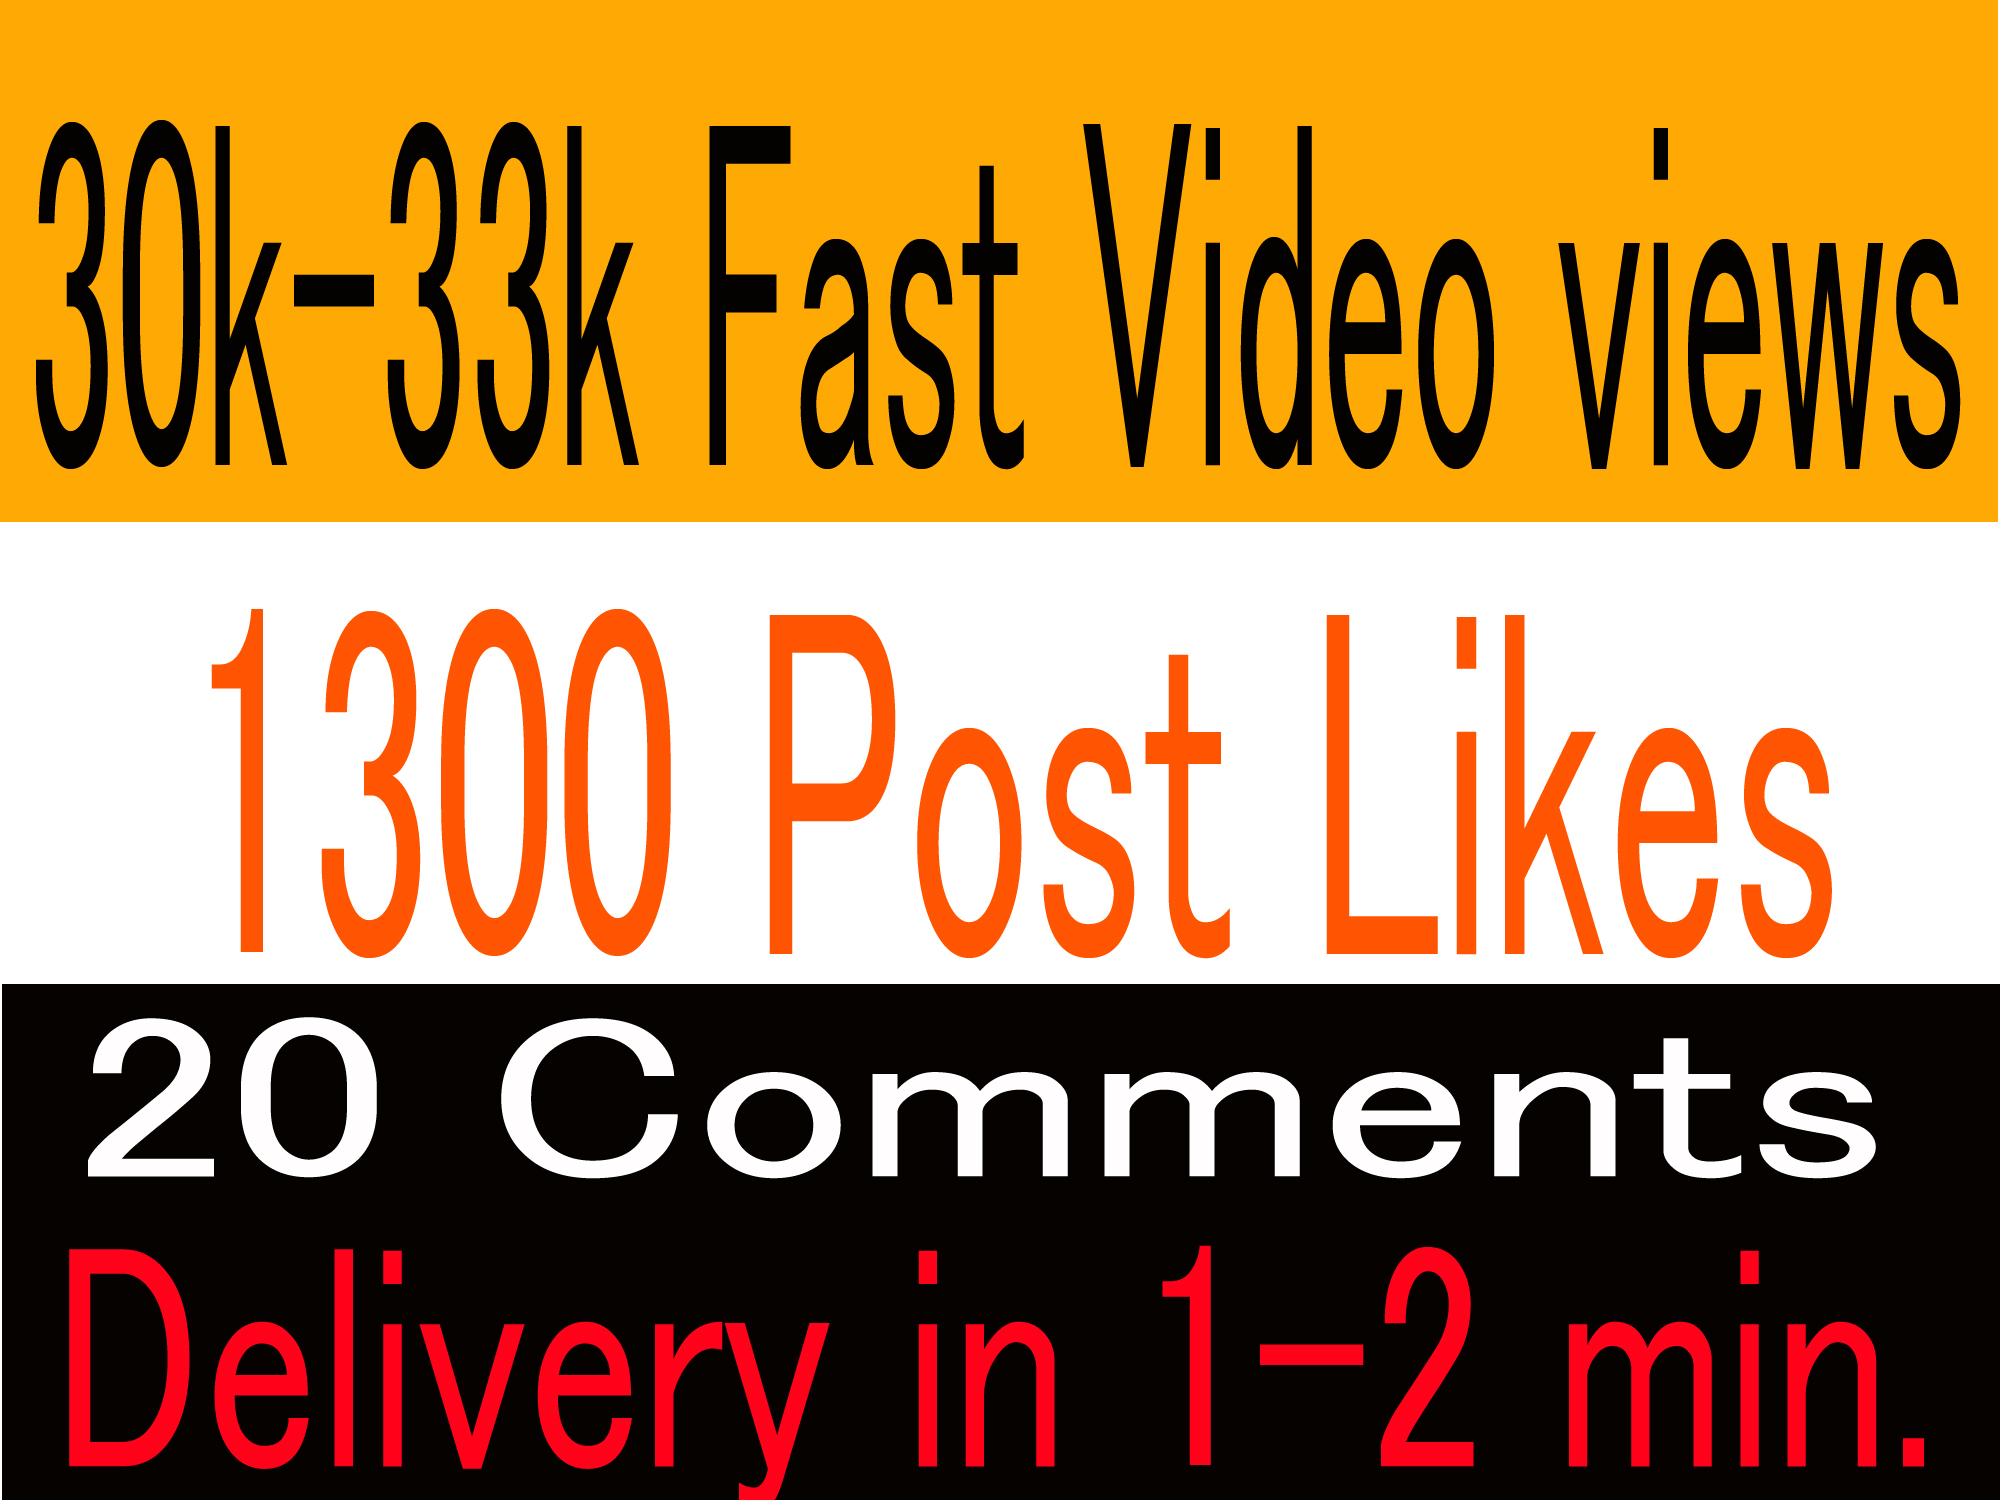 Lifetime Guaranteed 30k-33k Video Views or 1000-1300 likes or 10 comments Promotion in 1 min